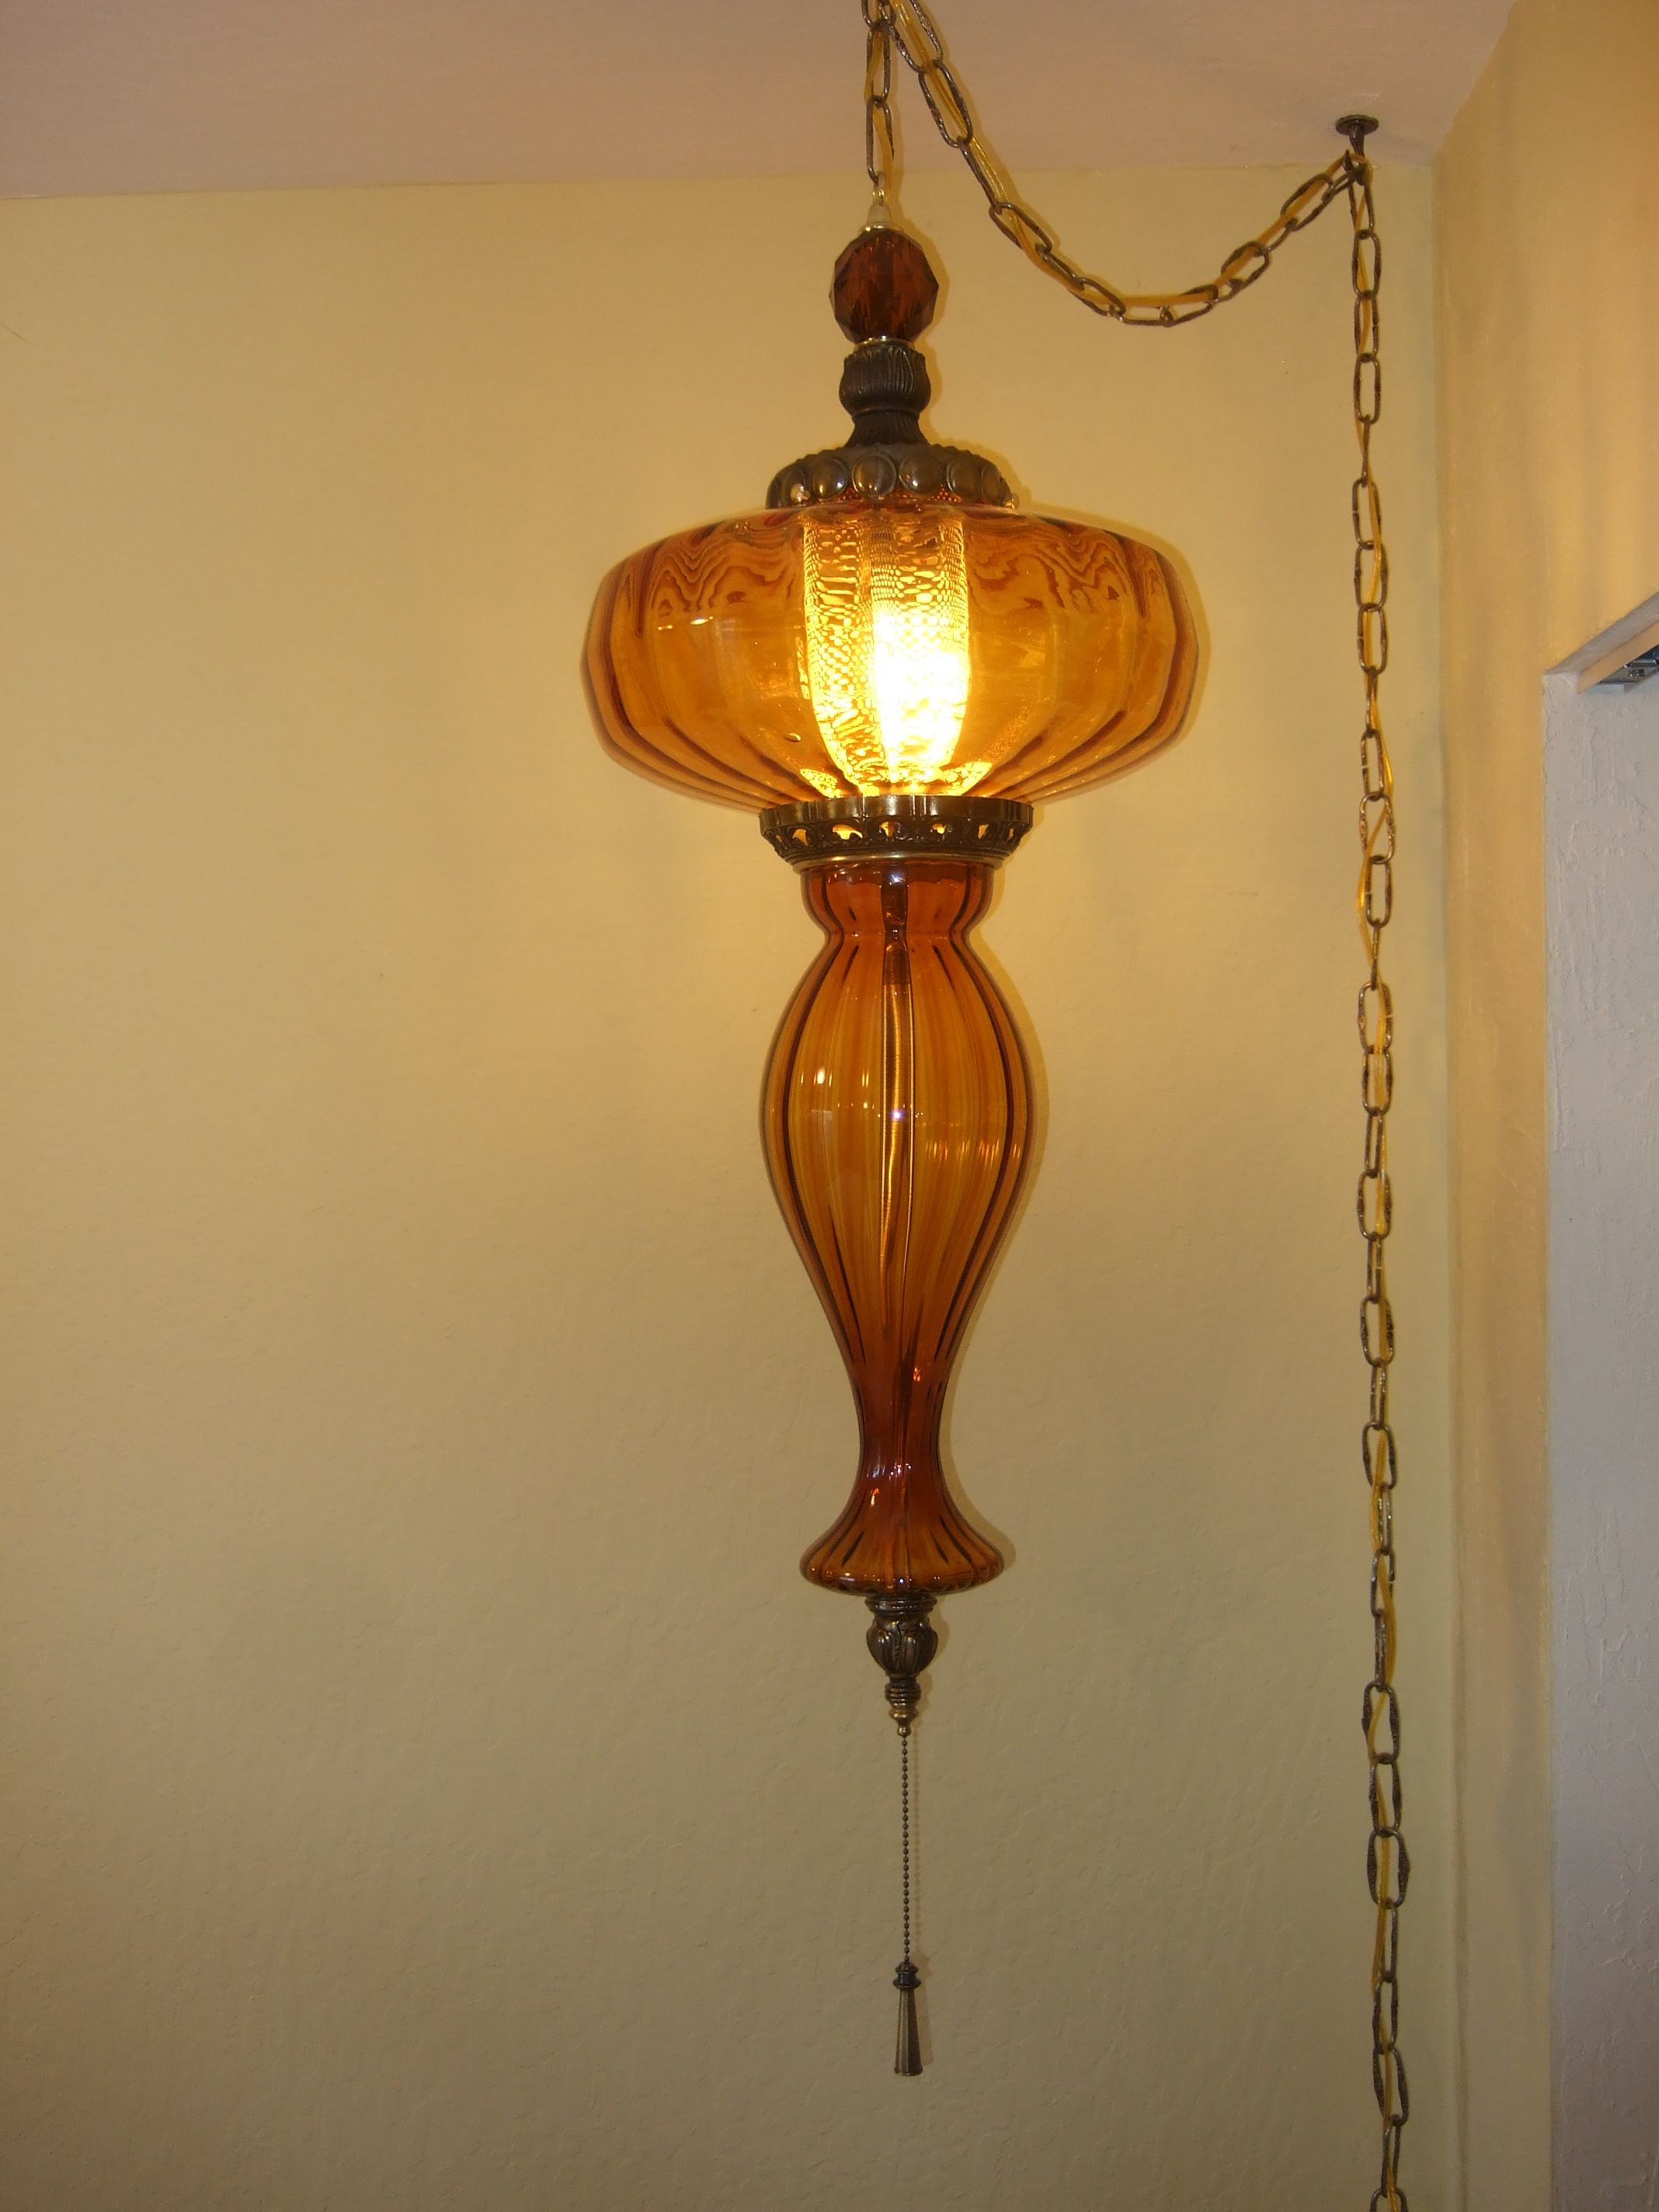 This is an amber swag lamp i designed from repurposing parts from